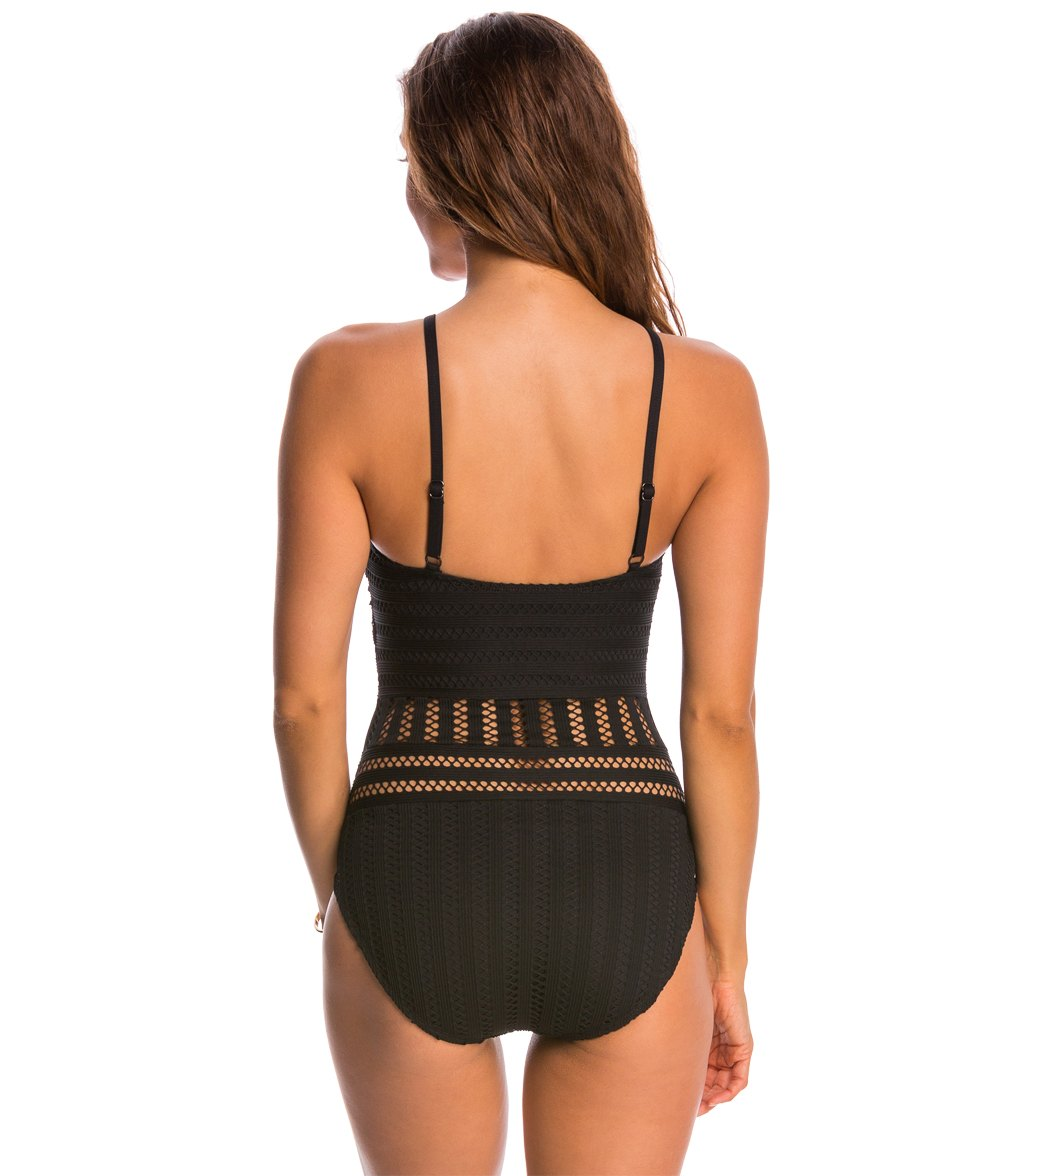 a56cf31435 Kenneth Cole Swimwear Tough Luxe High Neck One Piece Swimsuit. Black;  Midnight